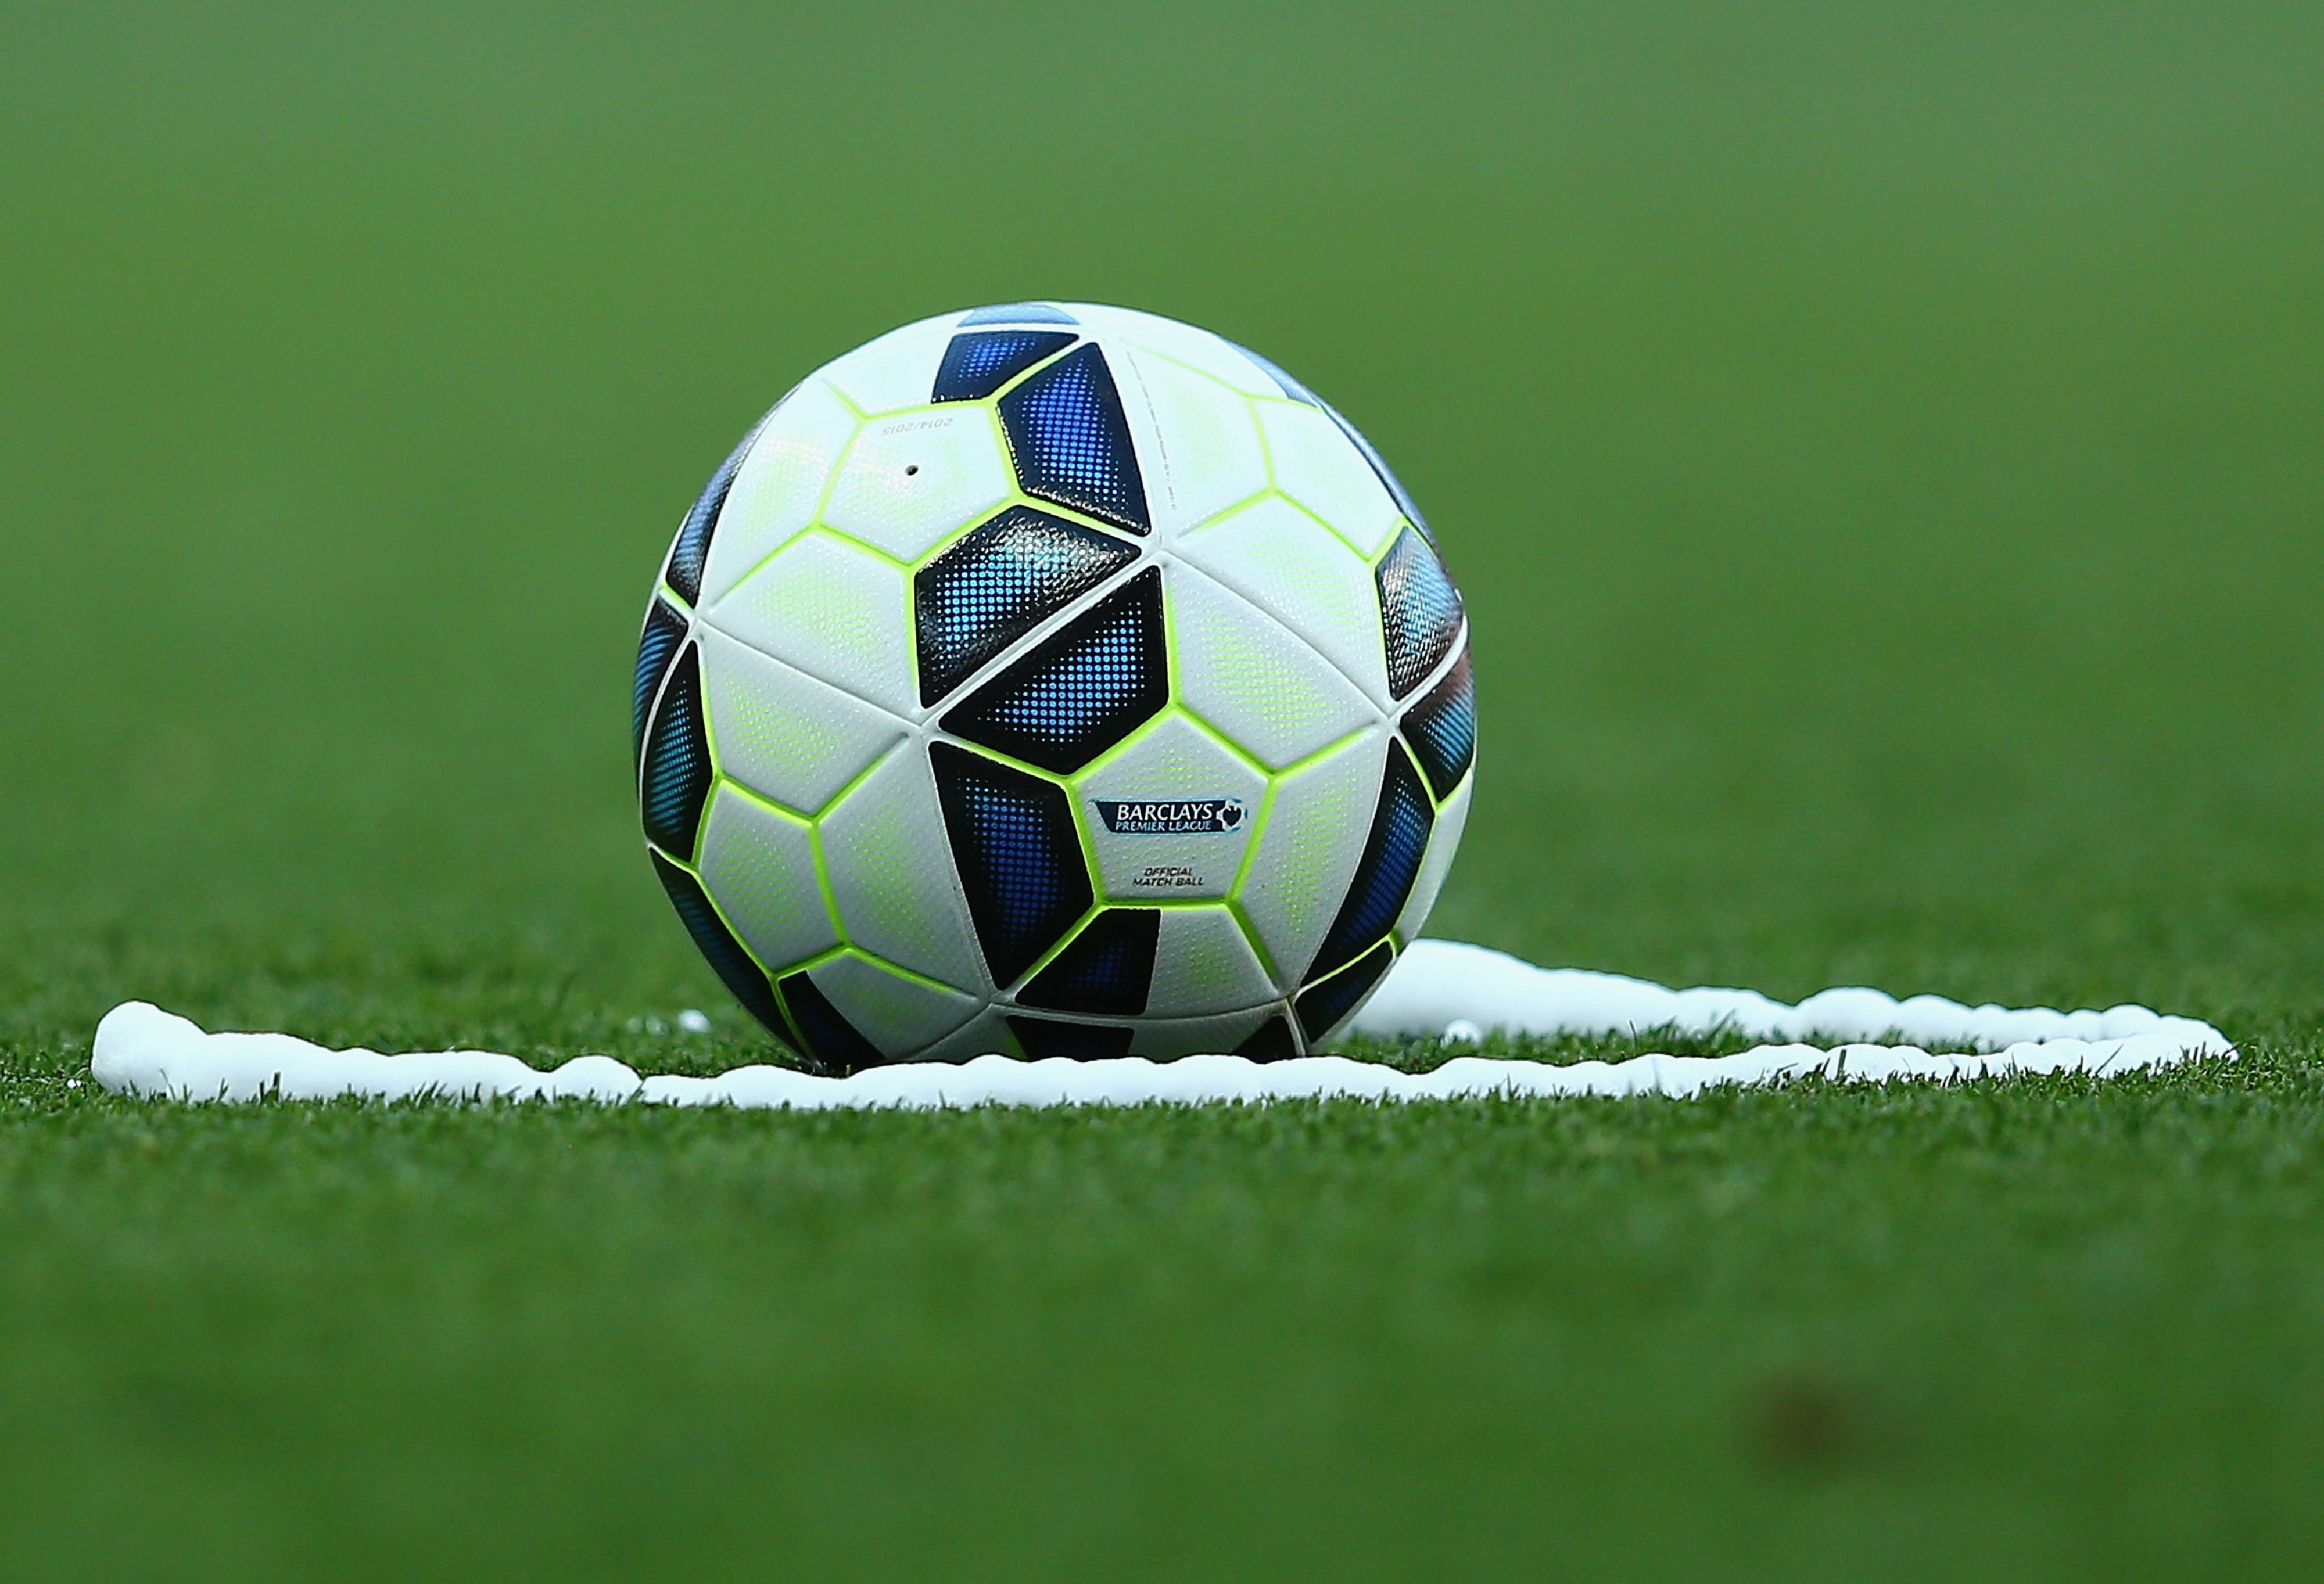 PICTURED: where the vanishing spray is actually supposed to go